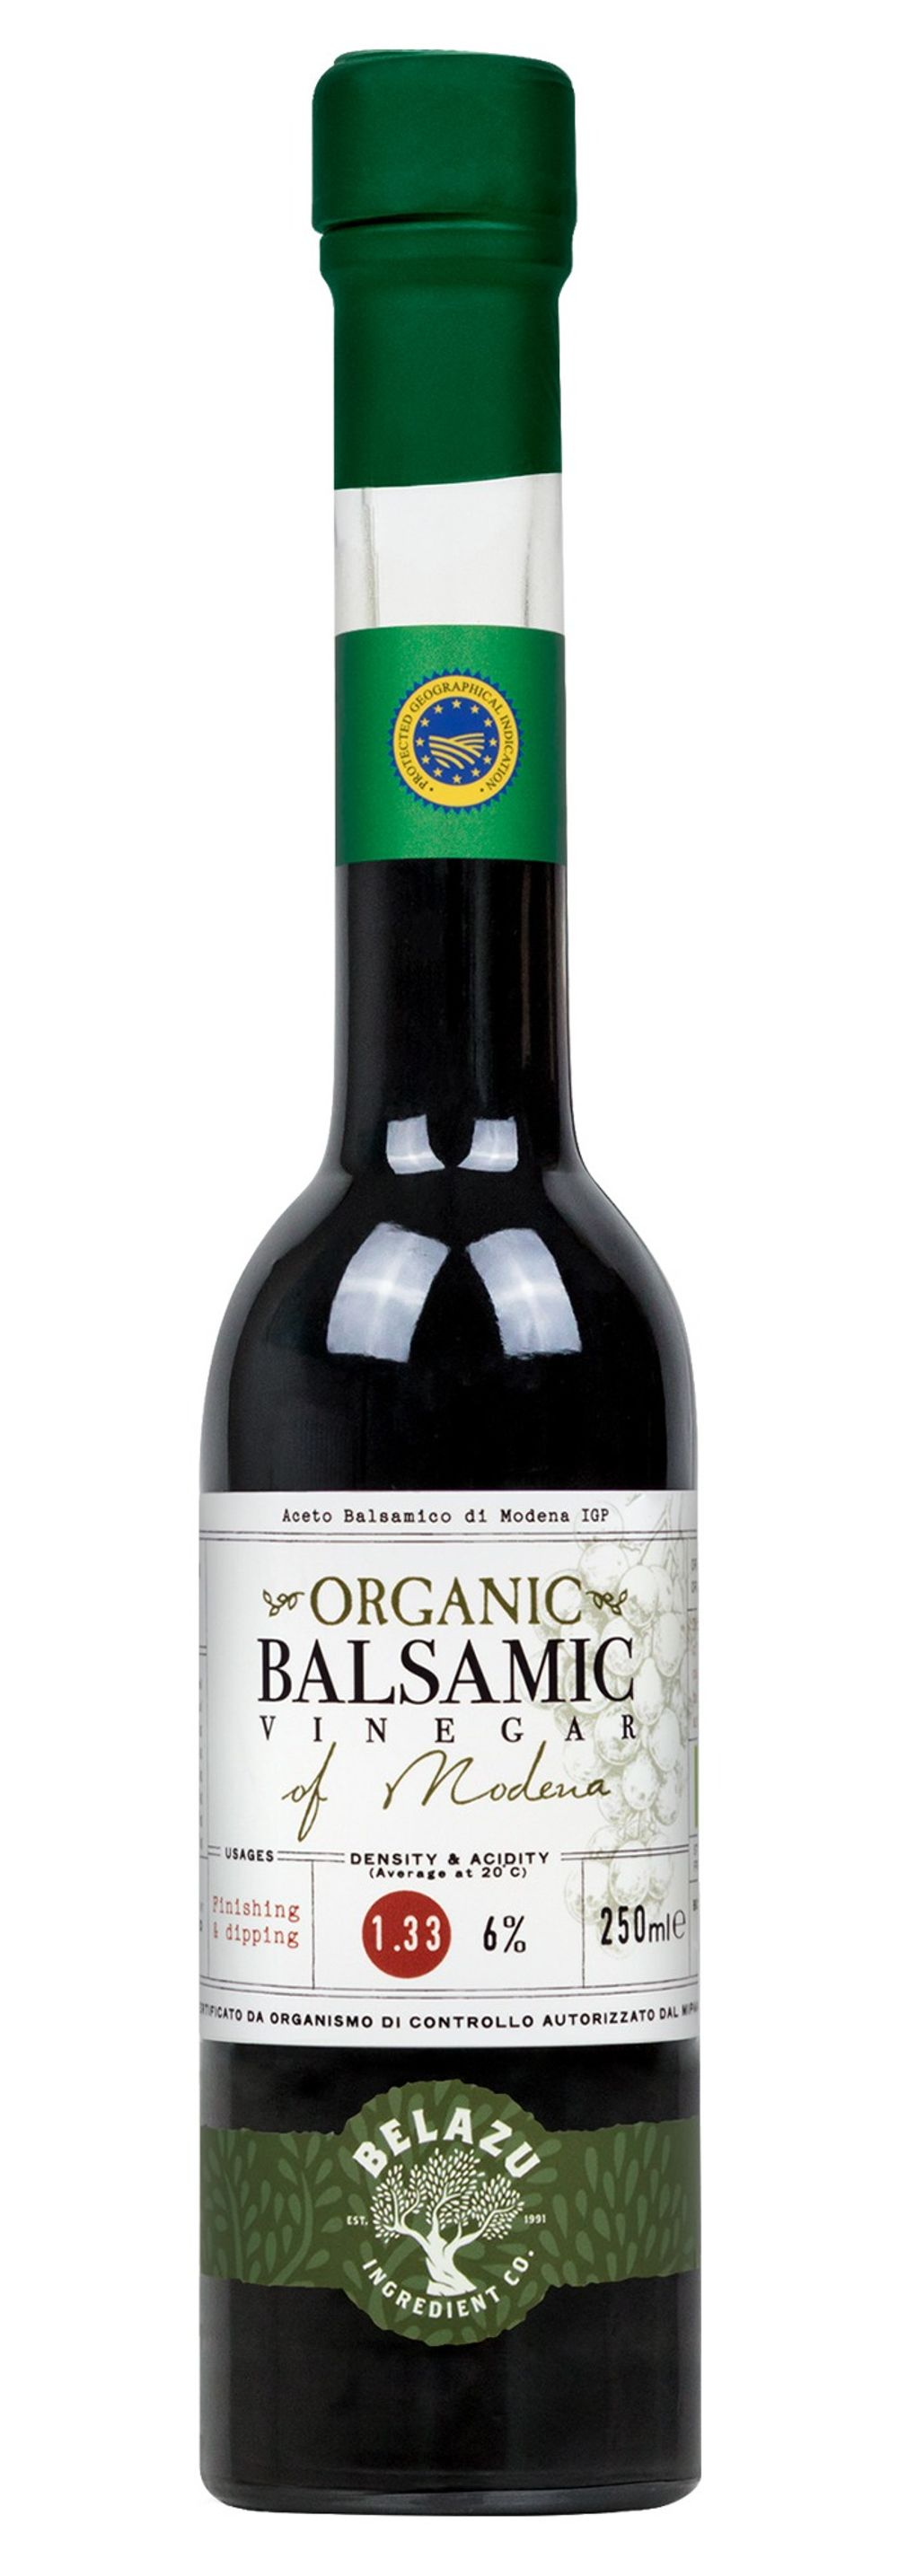 Organic Balsamic Vinegar - Density 1.33